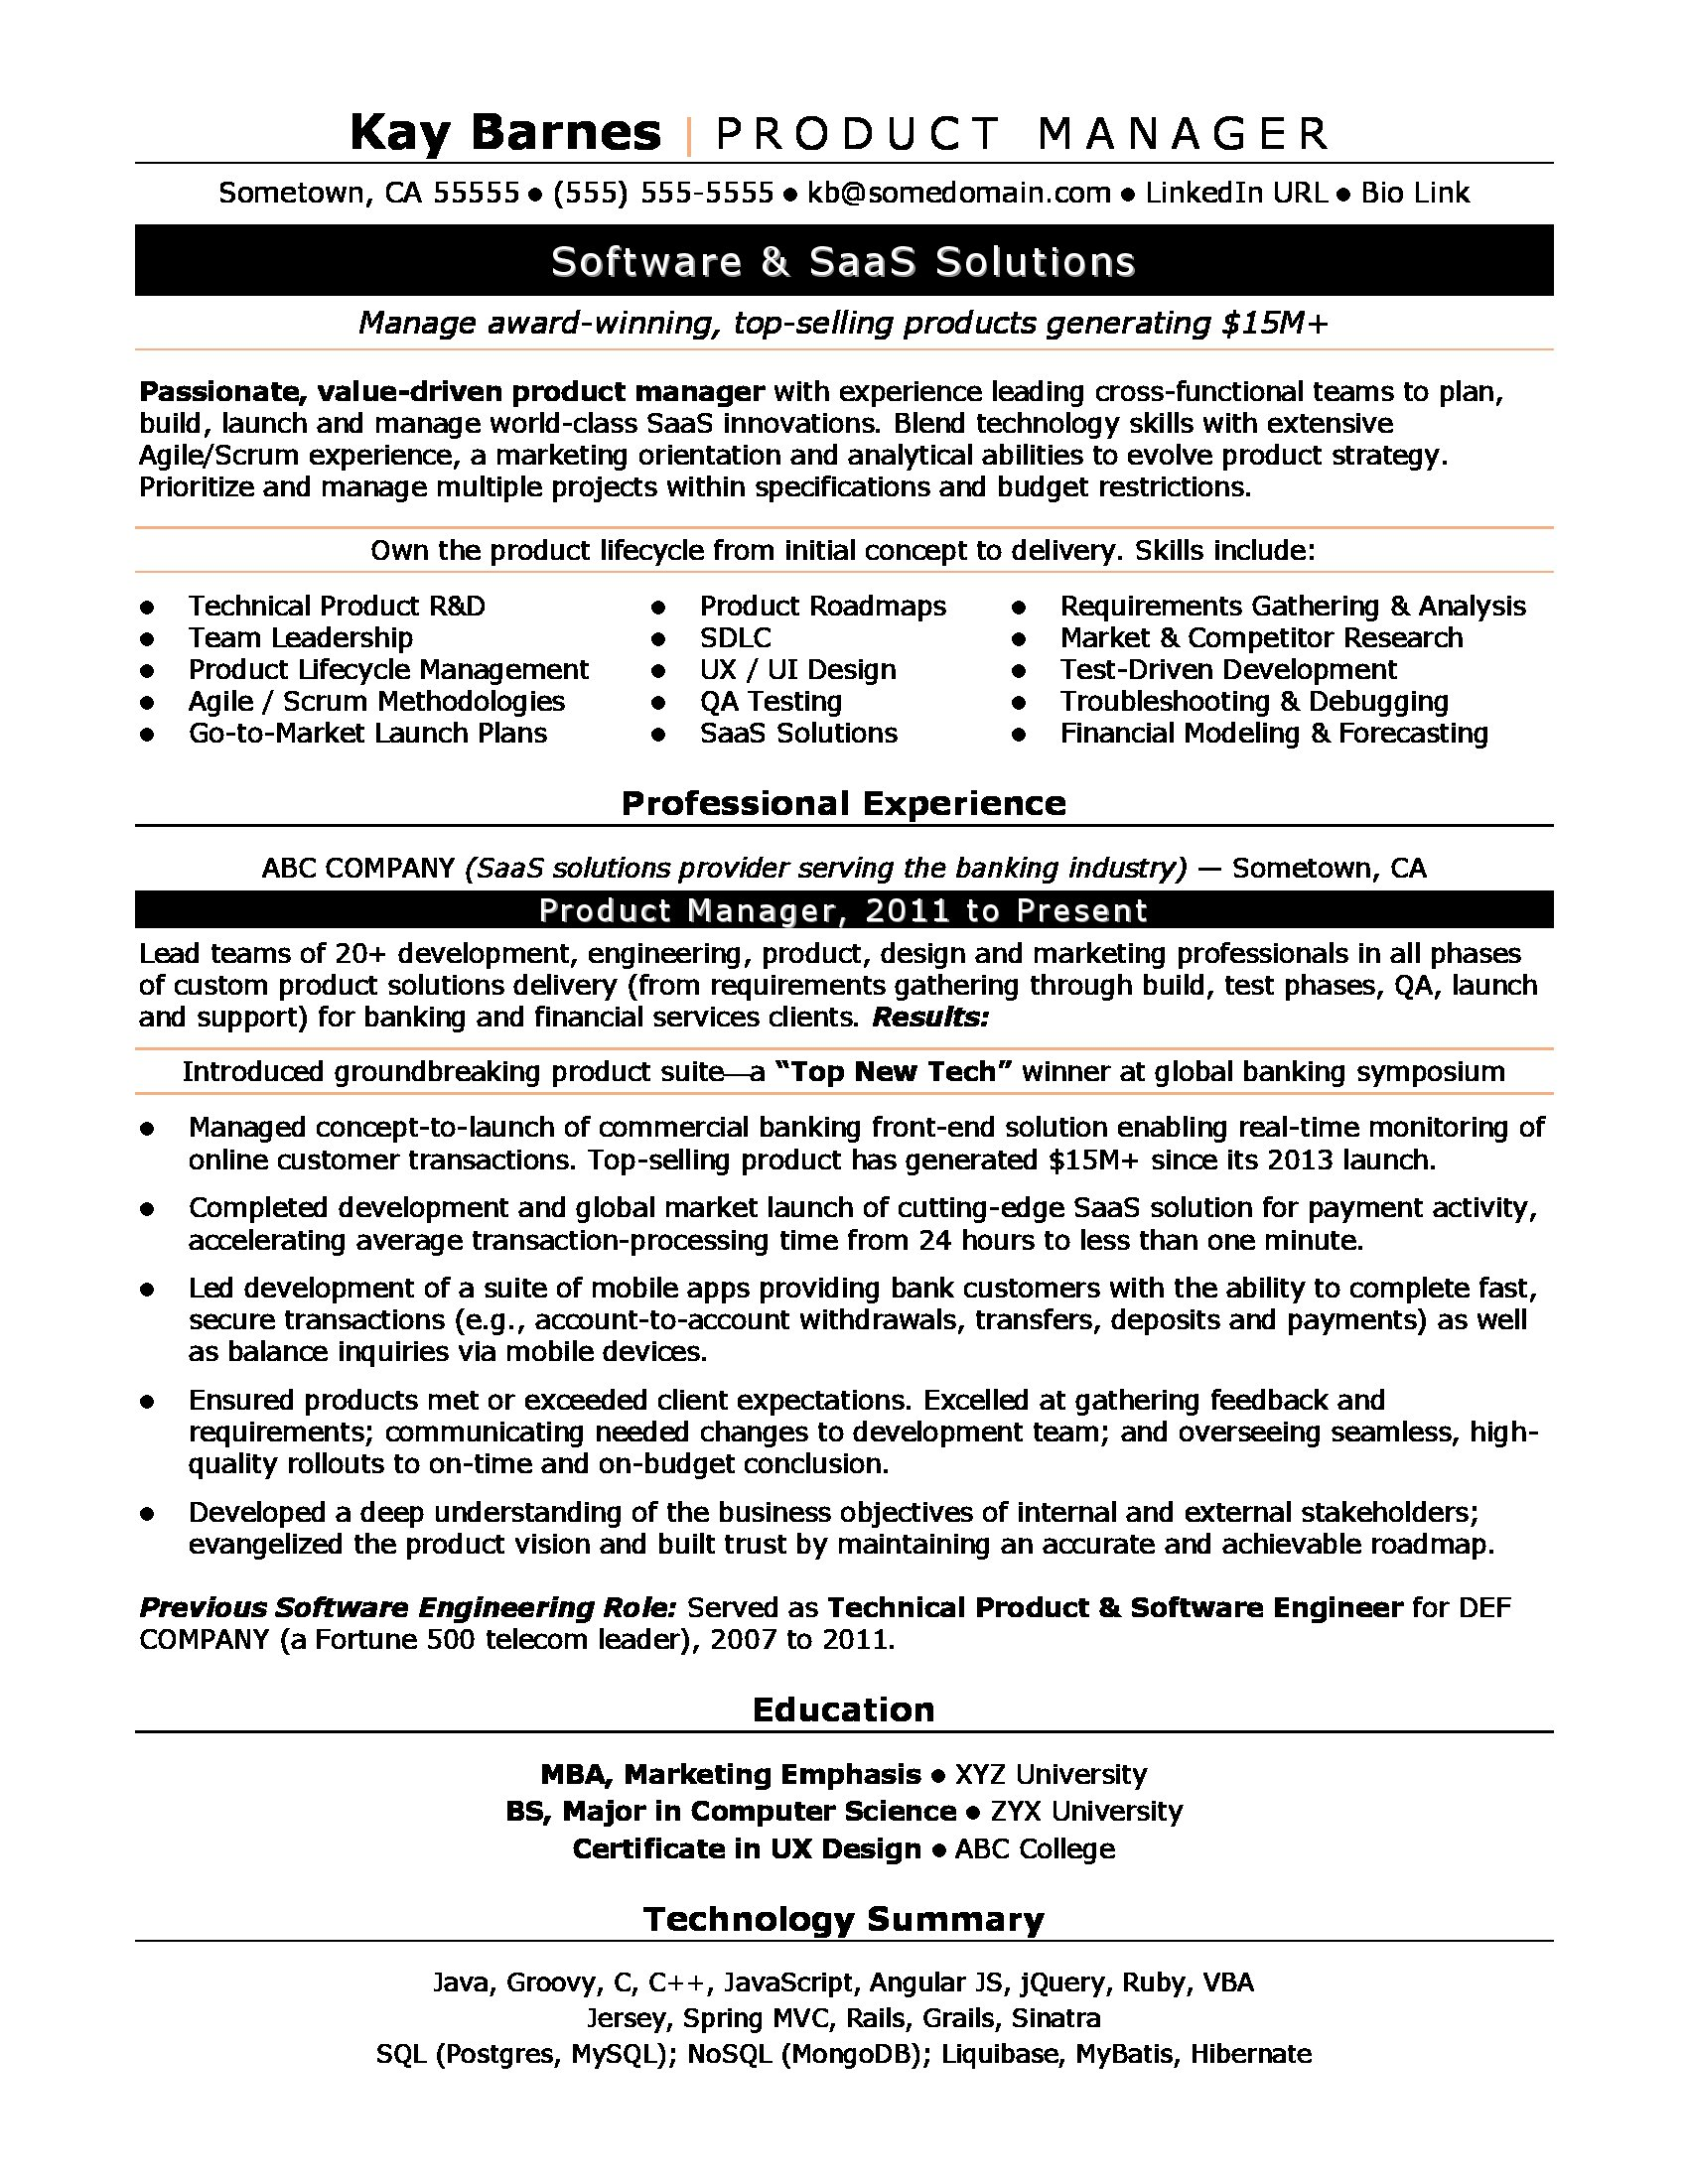 product manager resume sample monster delivery director productmanager usc career perfect Resume Delivery Director Resume